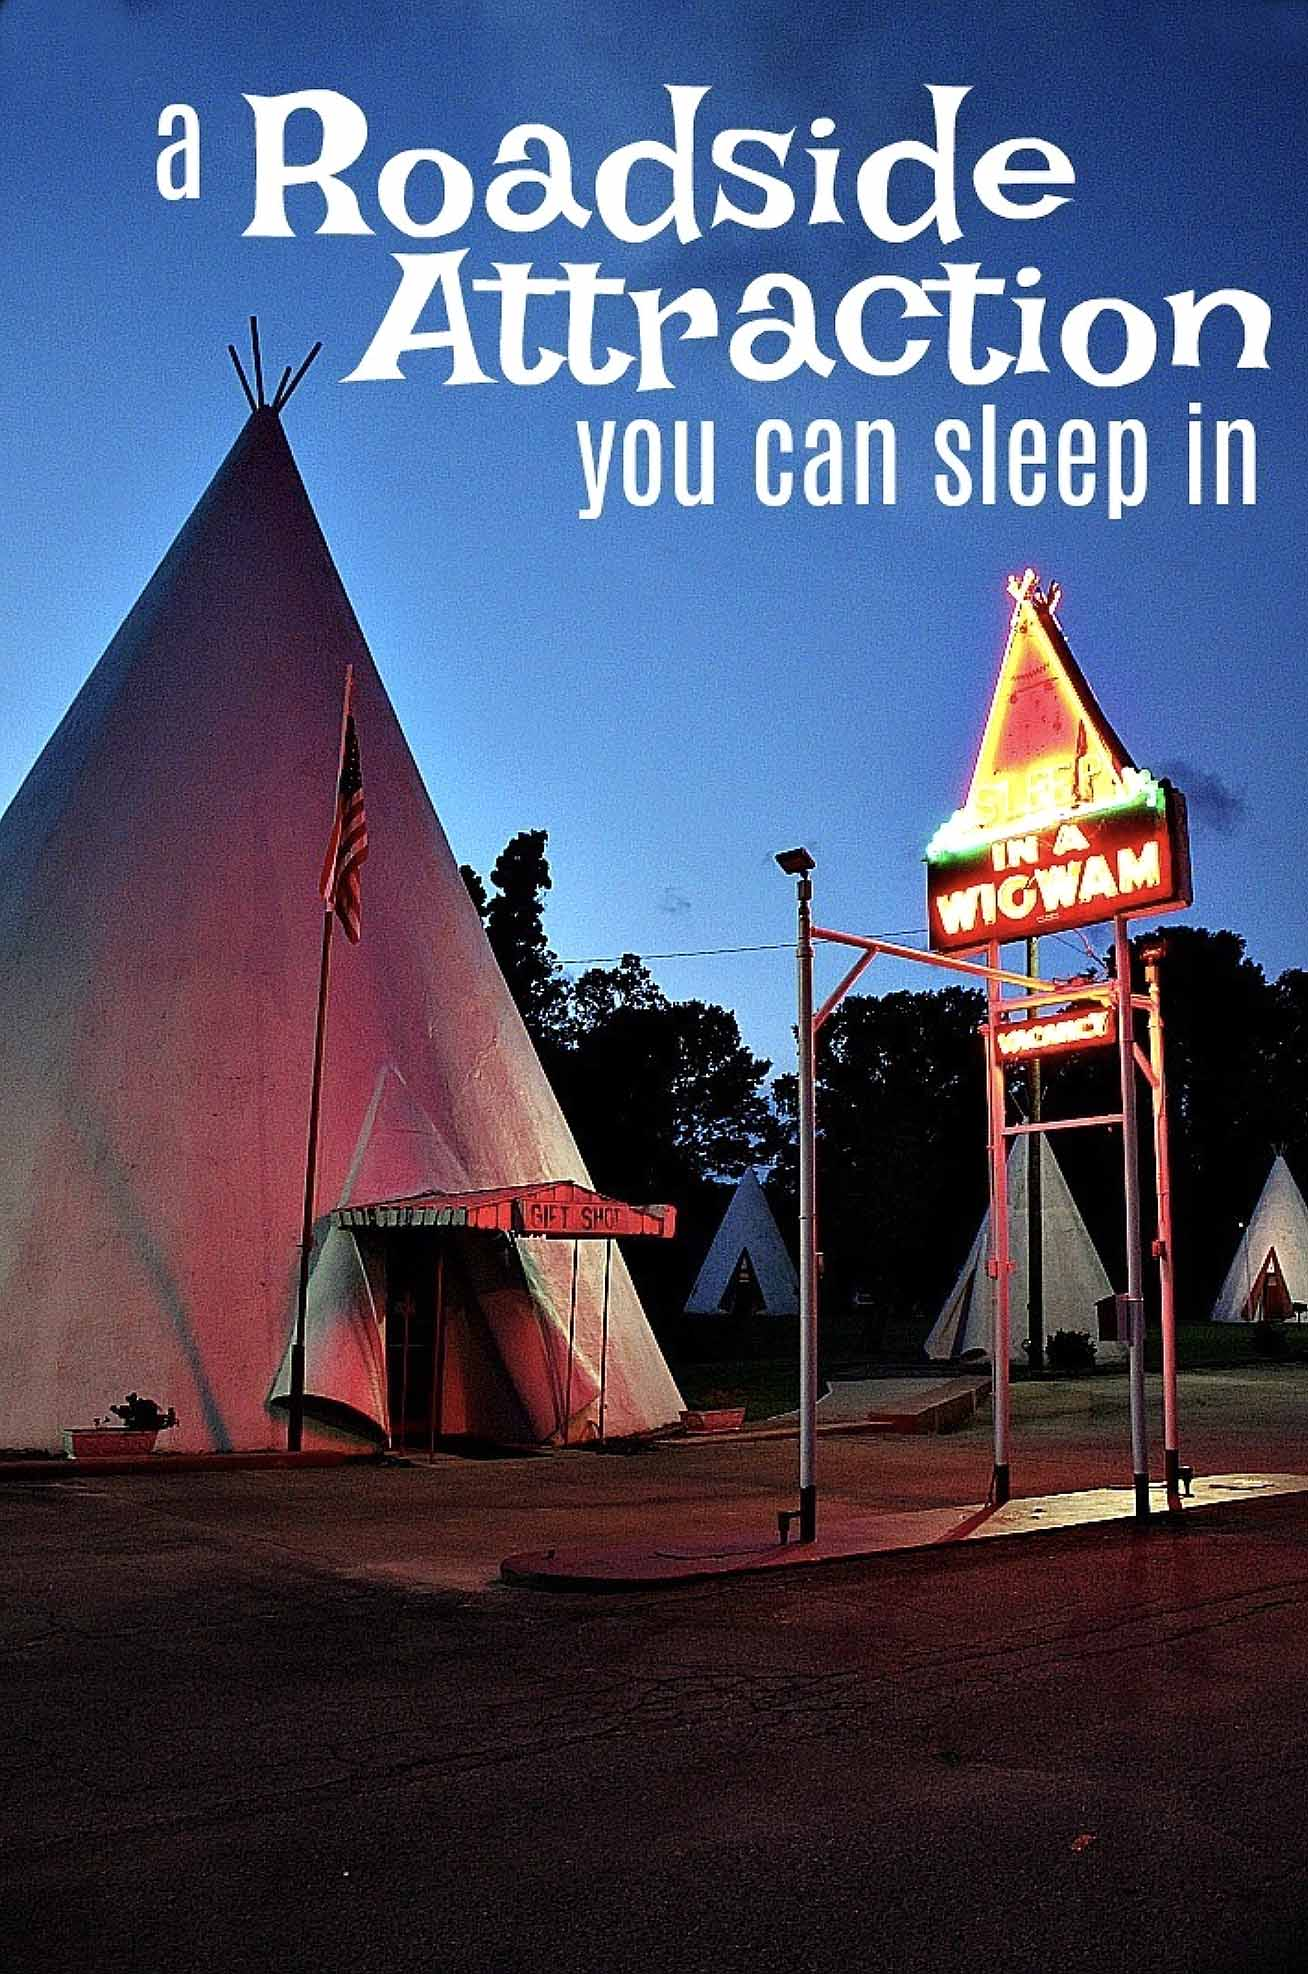 LET'S PARTY IN A WIGWAM – The WigWam Motels